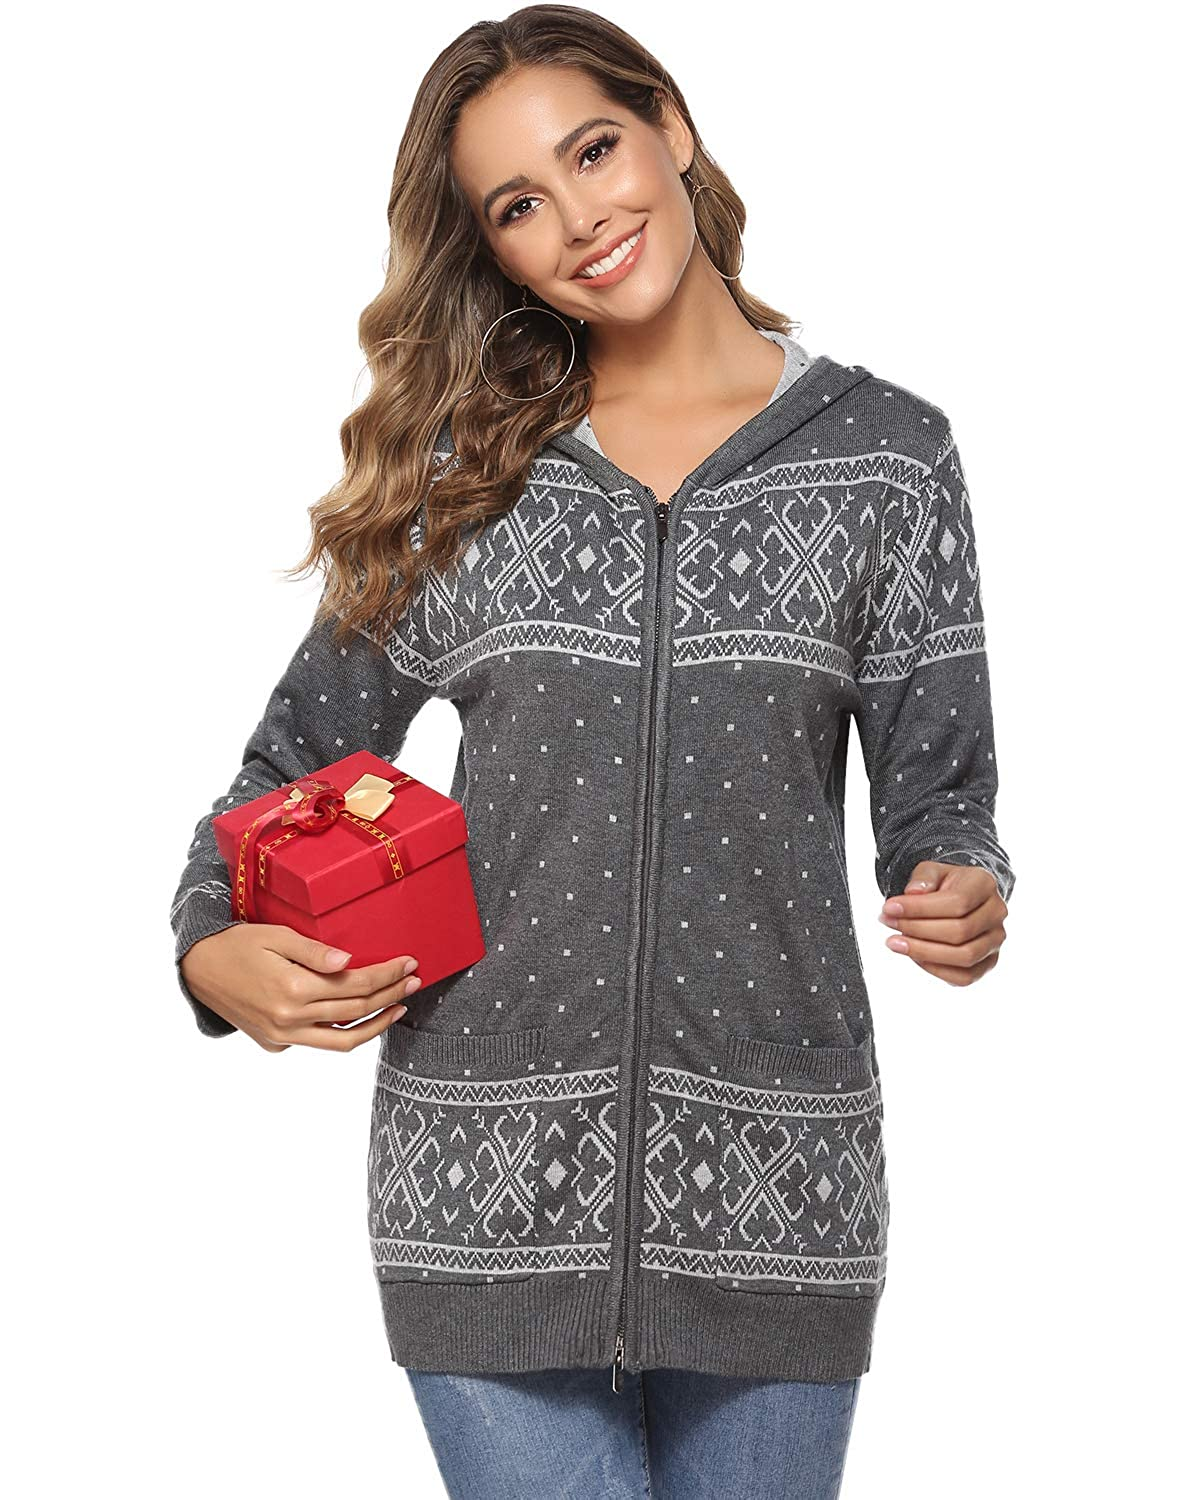 Hawiton Womens Snowflake Christmas Sweaters Coat Zipper Hooded Xmas Knit Cardigan with Pocket